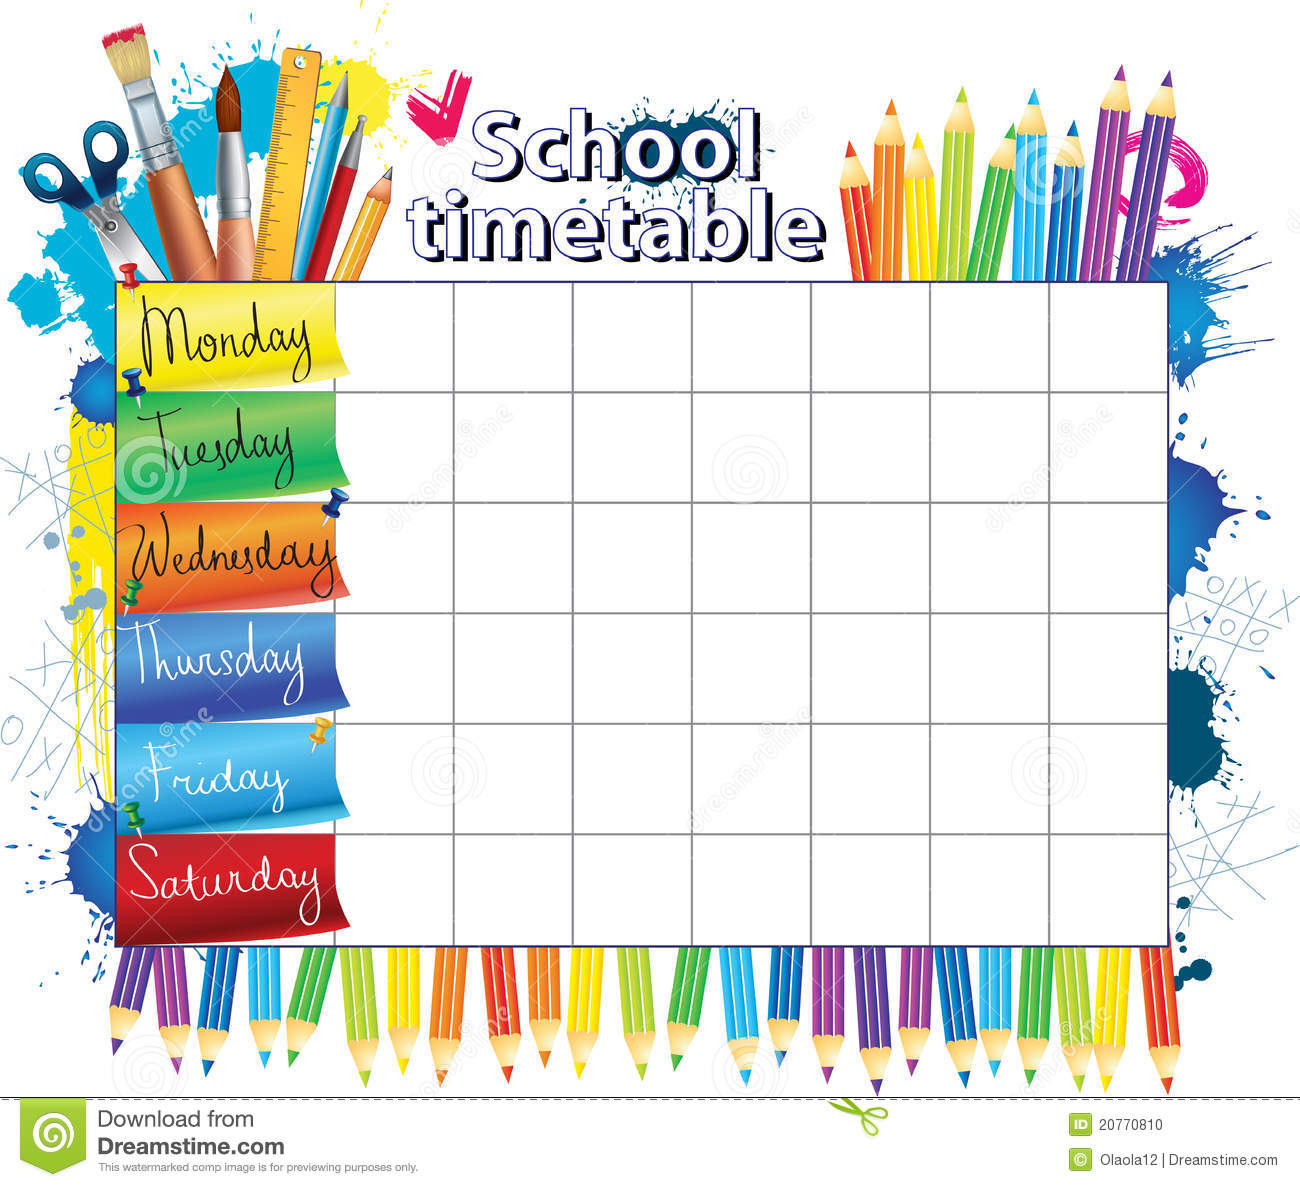 Quotes On School Time Table: Clipart Panda - Free Clipart Images